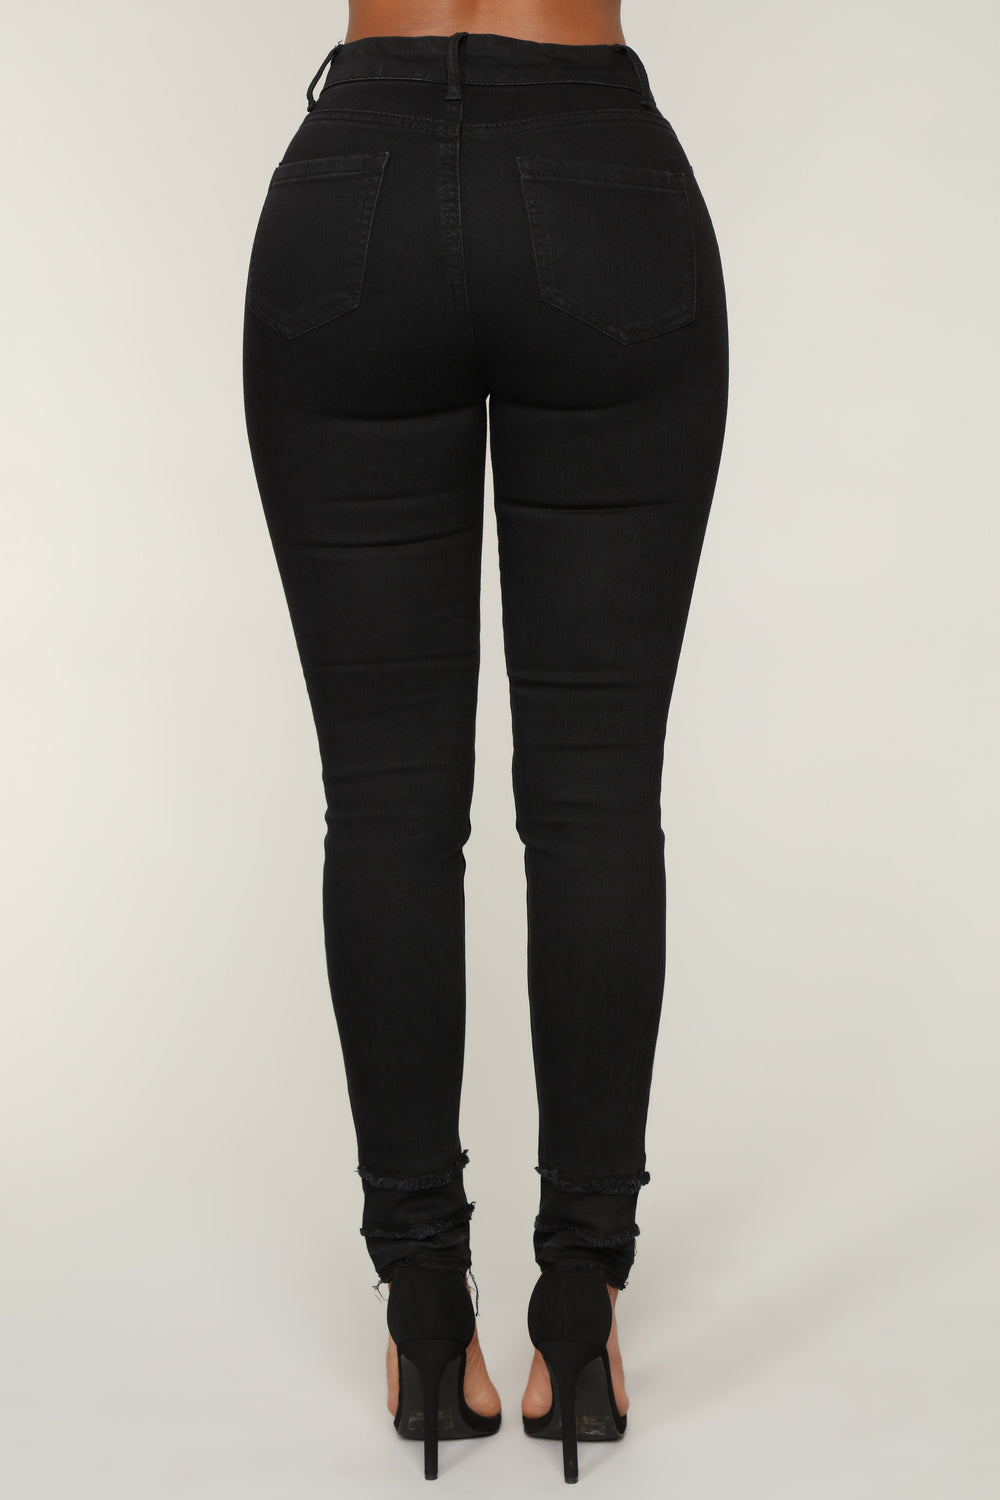 Double Up Fray Skinny Jeans - Black